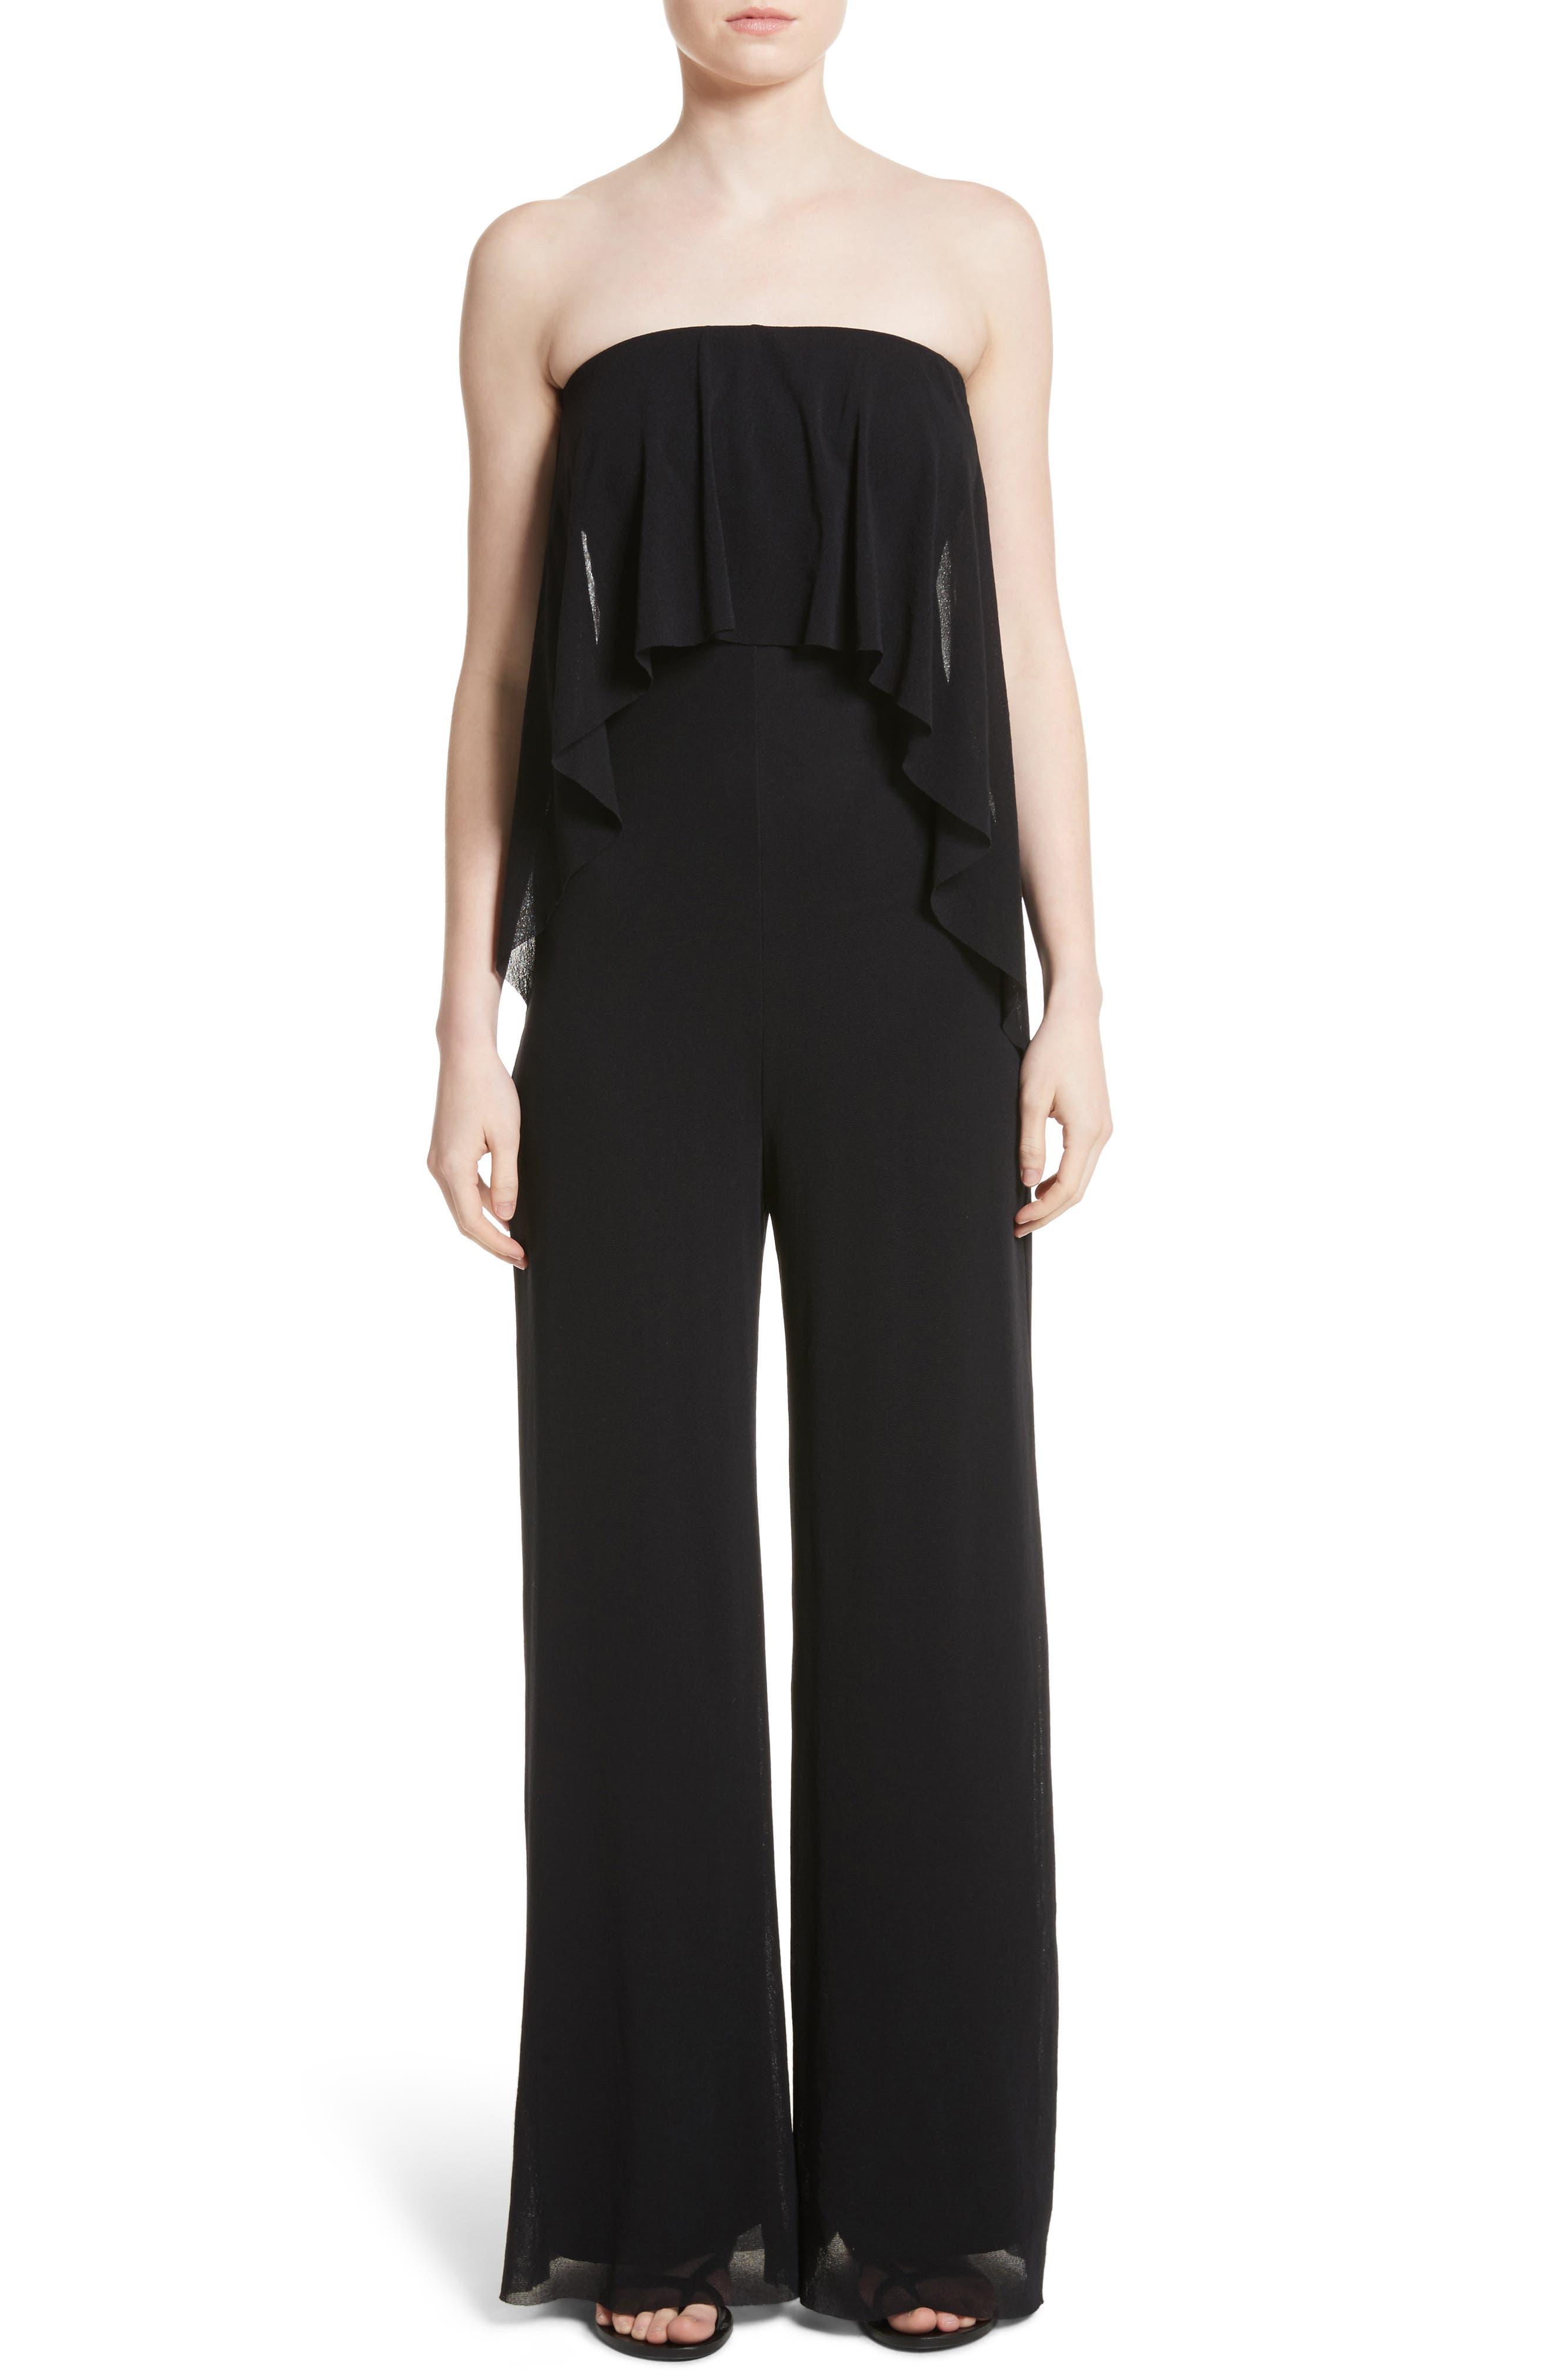 Popover Strapless Floral Print Tulle Jumpsuit,                             Main thumbnail 1, color,                             001